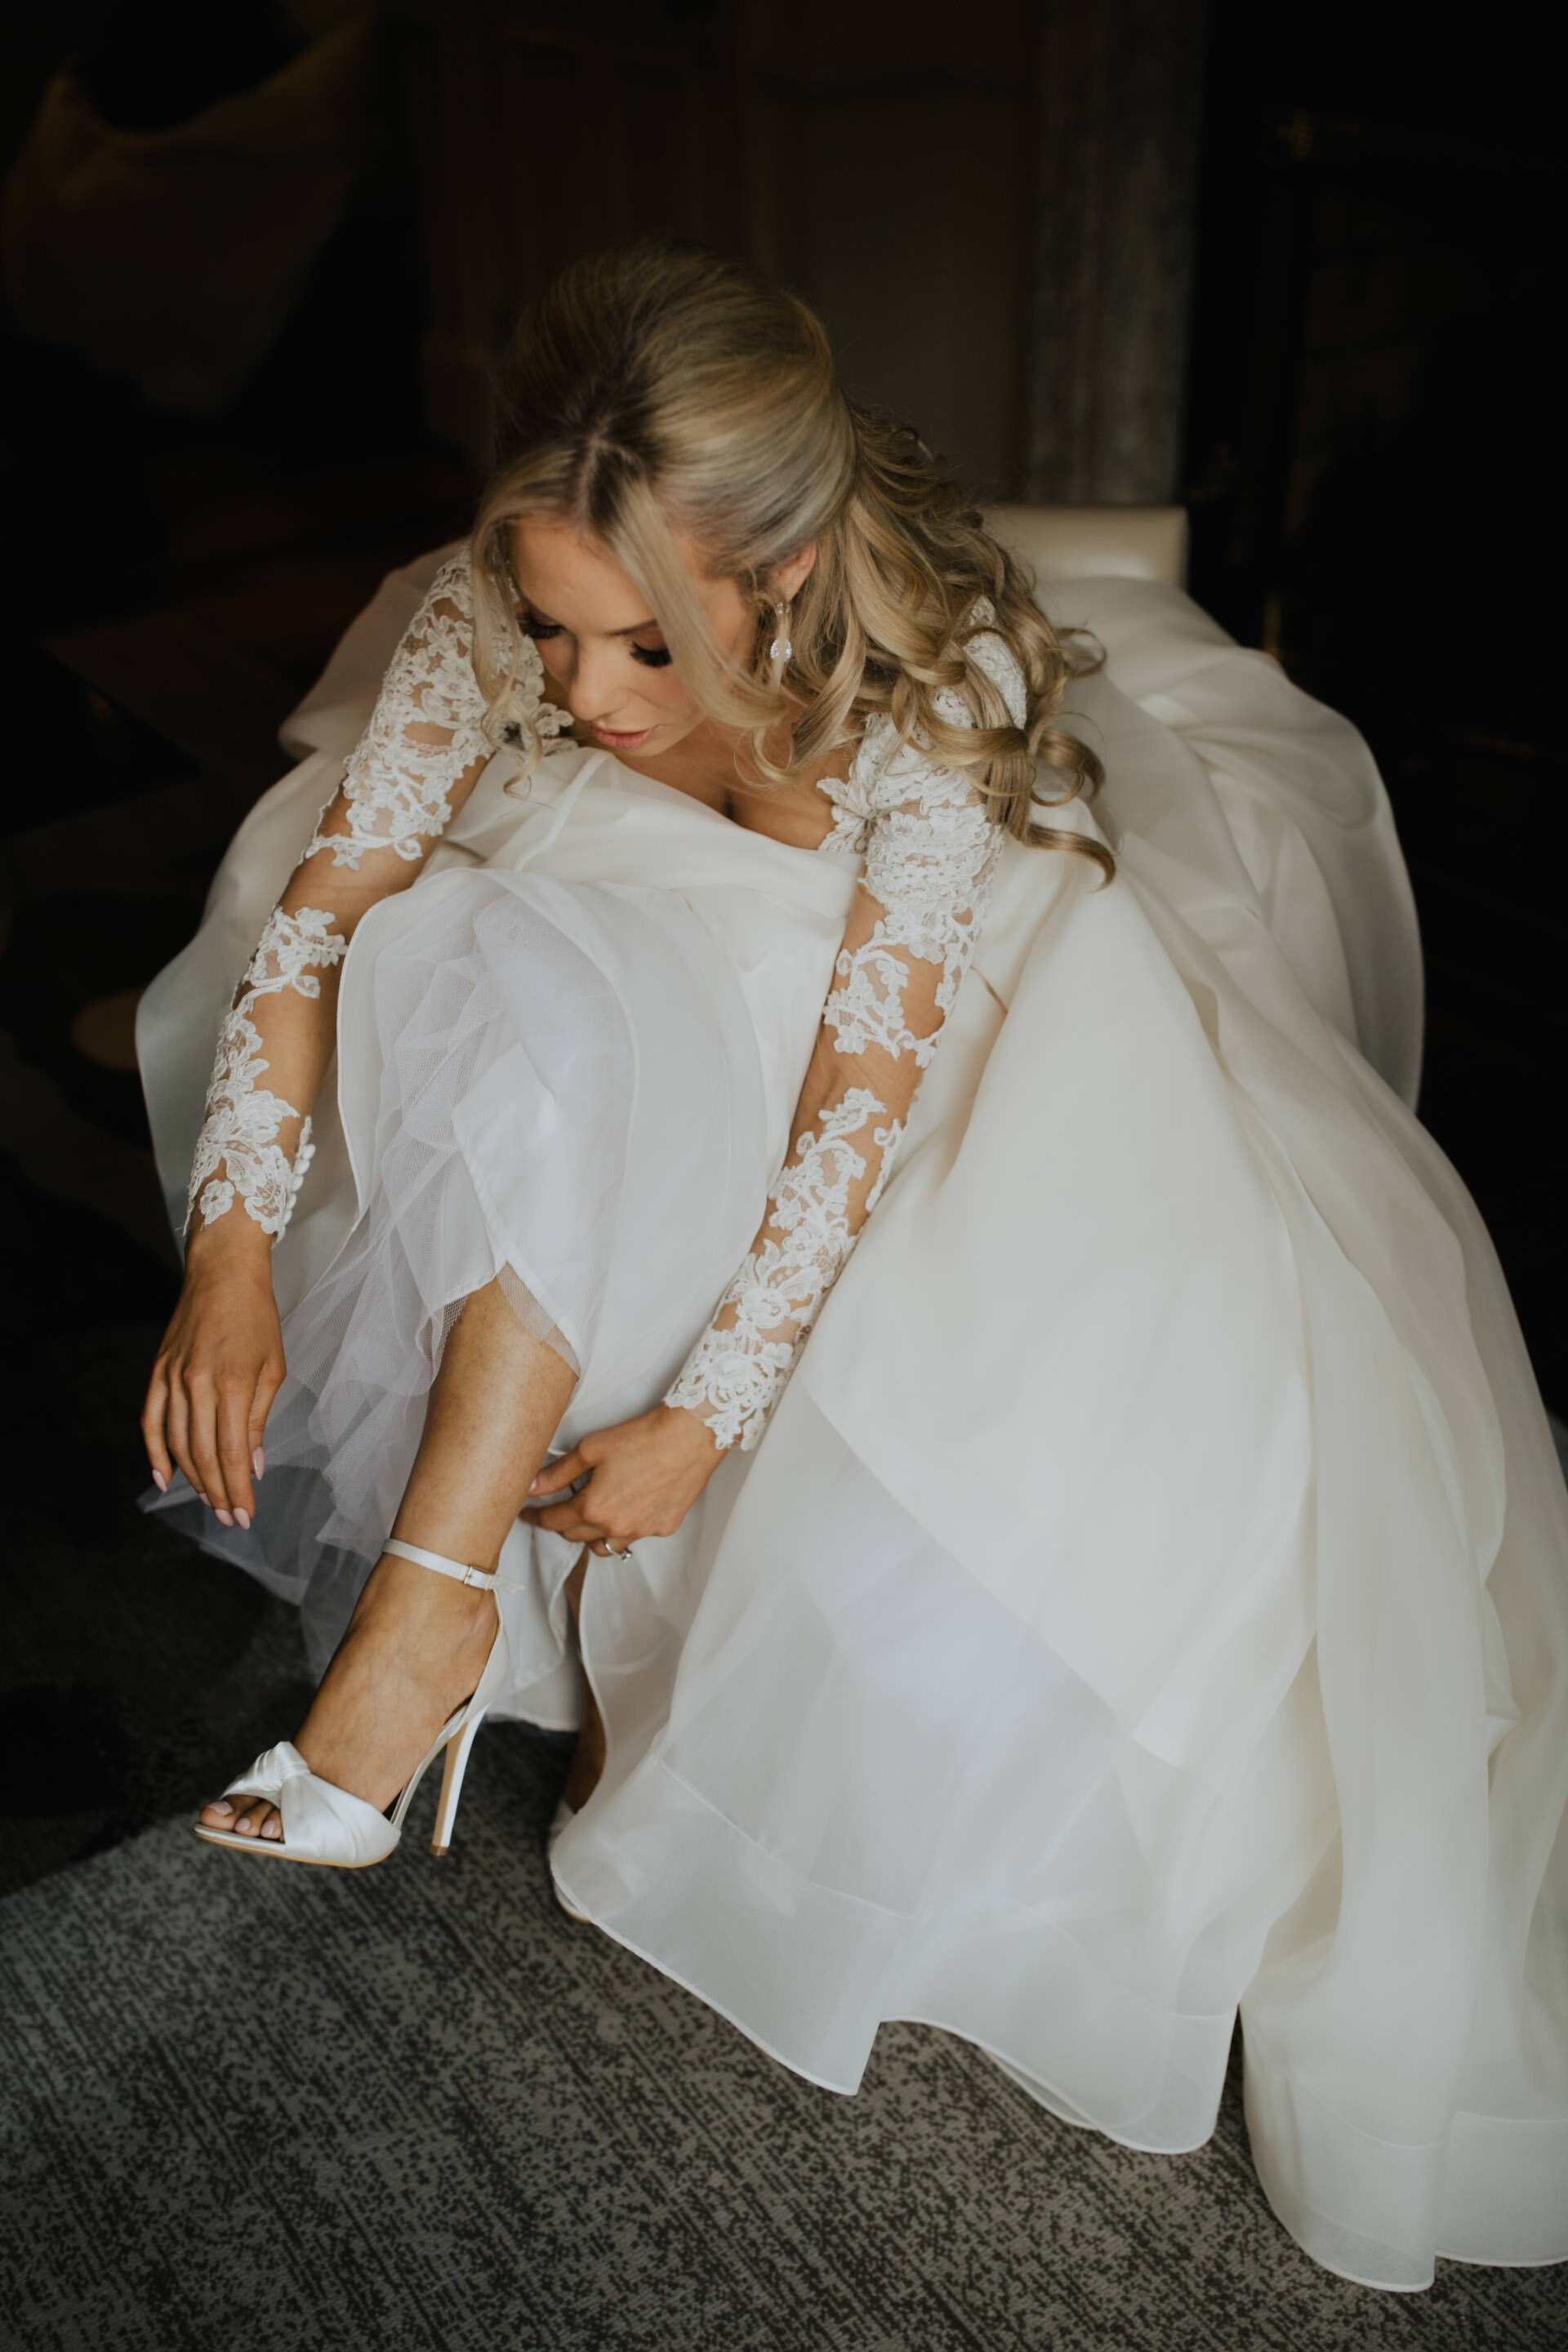 c&s_the_westbury_wedding_photographer_livia_figueiredo_7.jpg